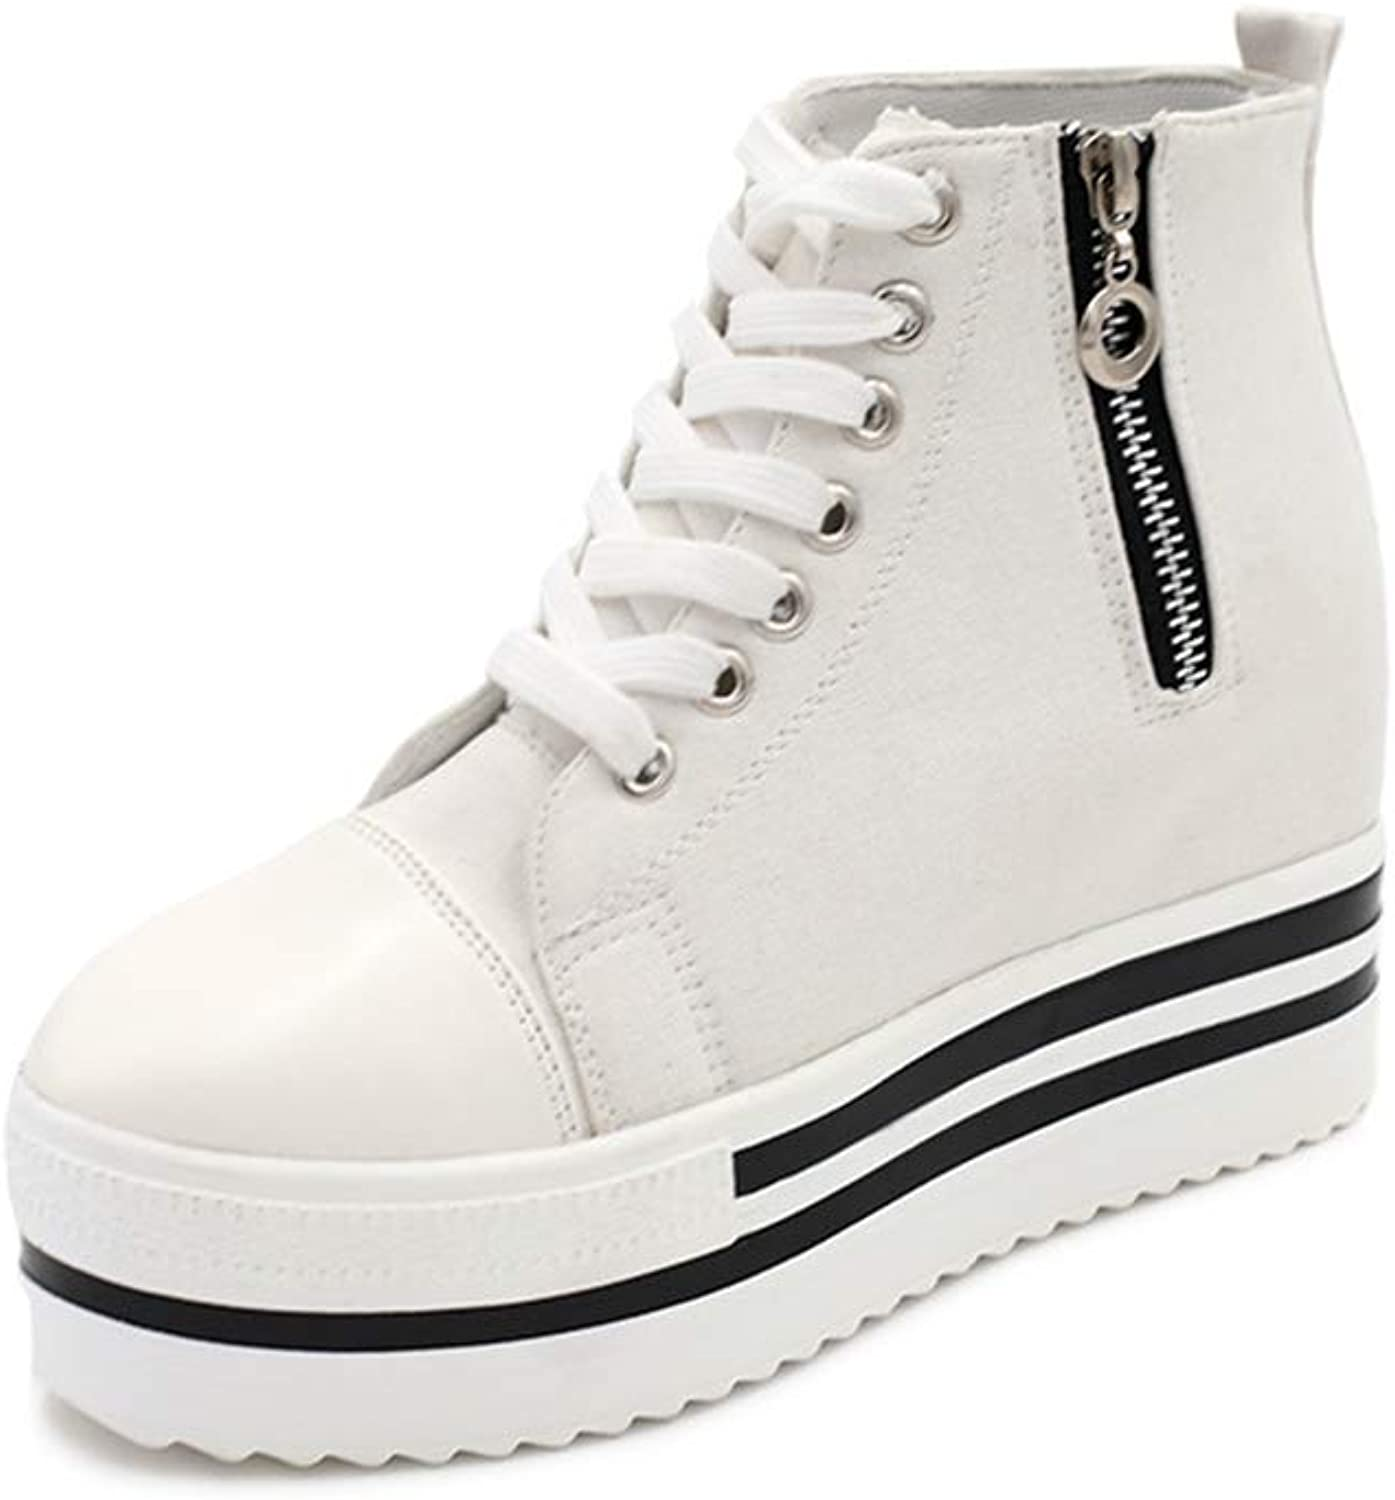 Lcky High-top Canvas shoes Popular Women's Walking shoes Sneakers